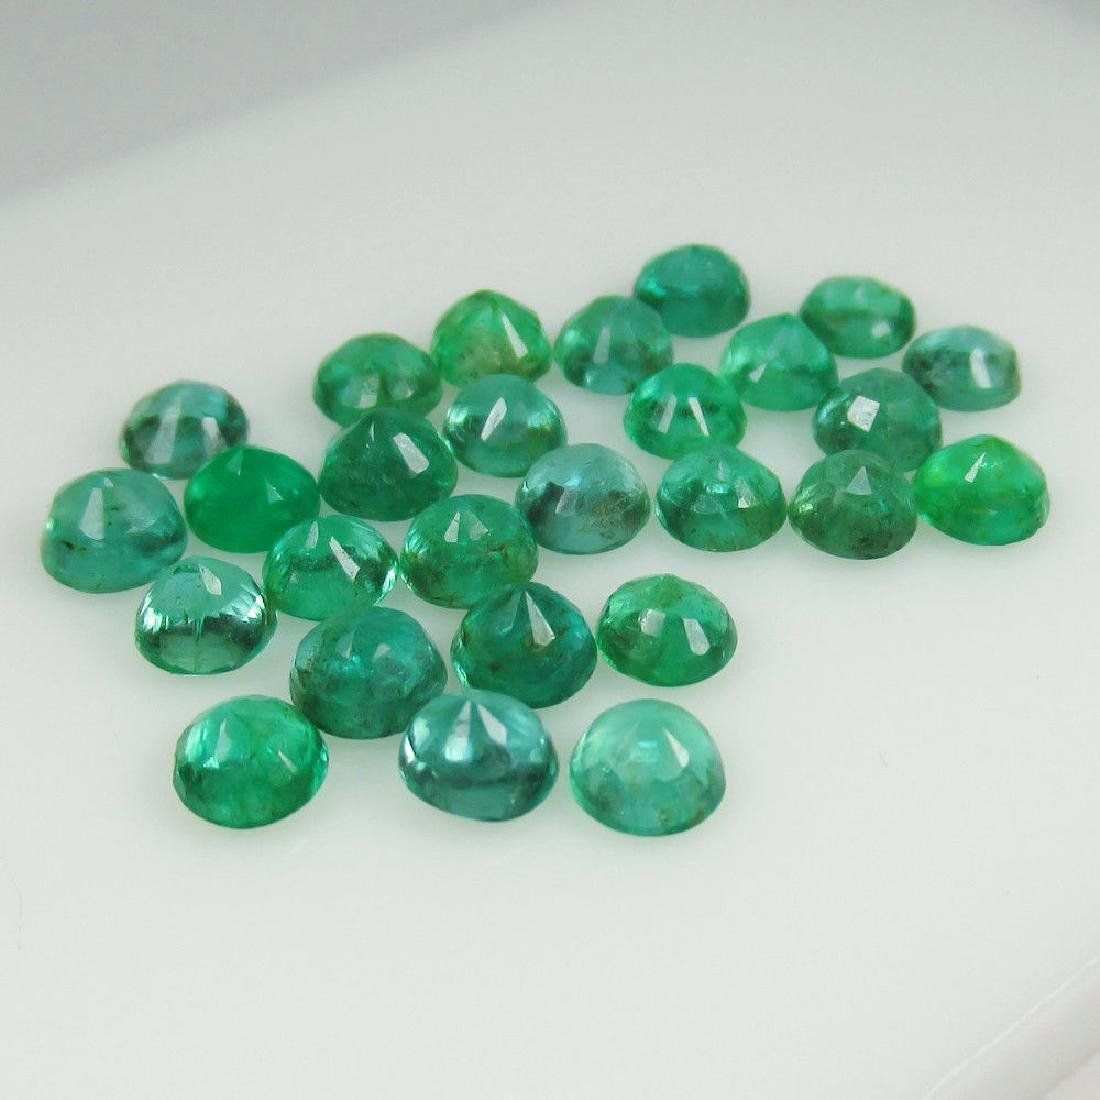 8.65 Ct Genuine 27 Loose Zambian Emerald Excellent - 4